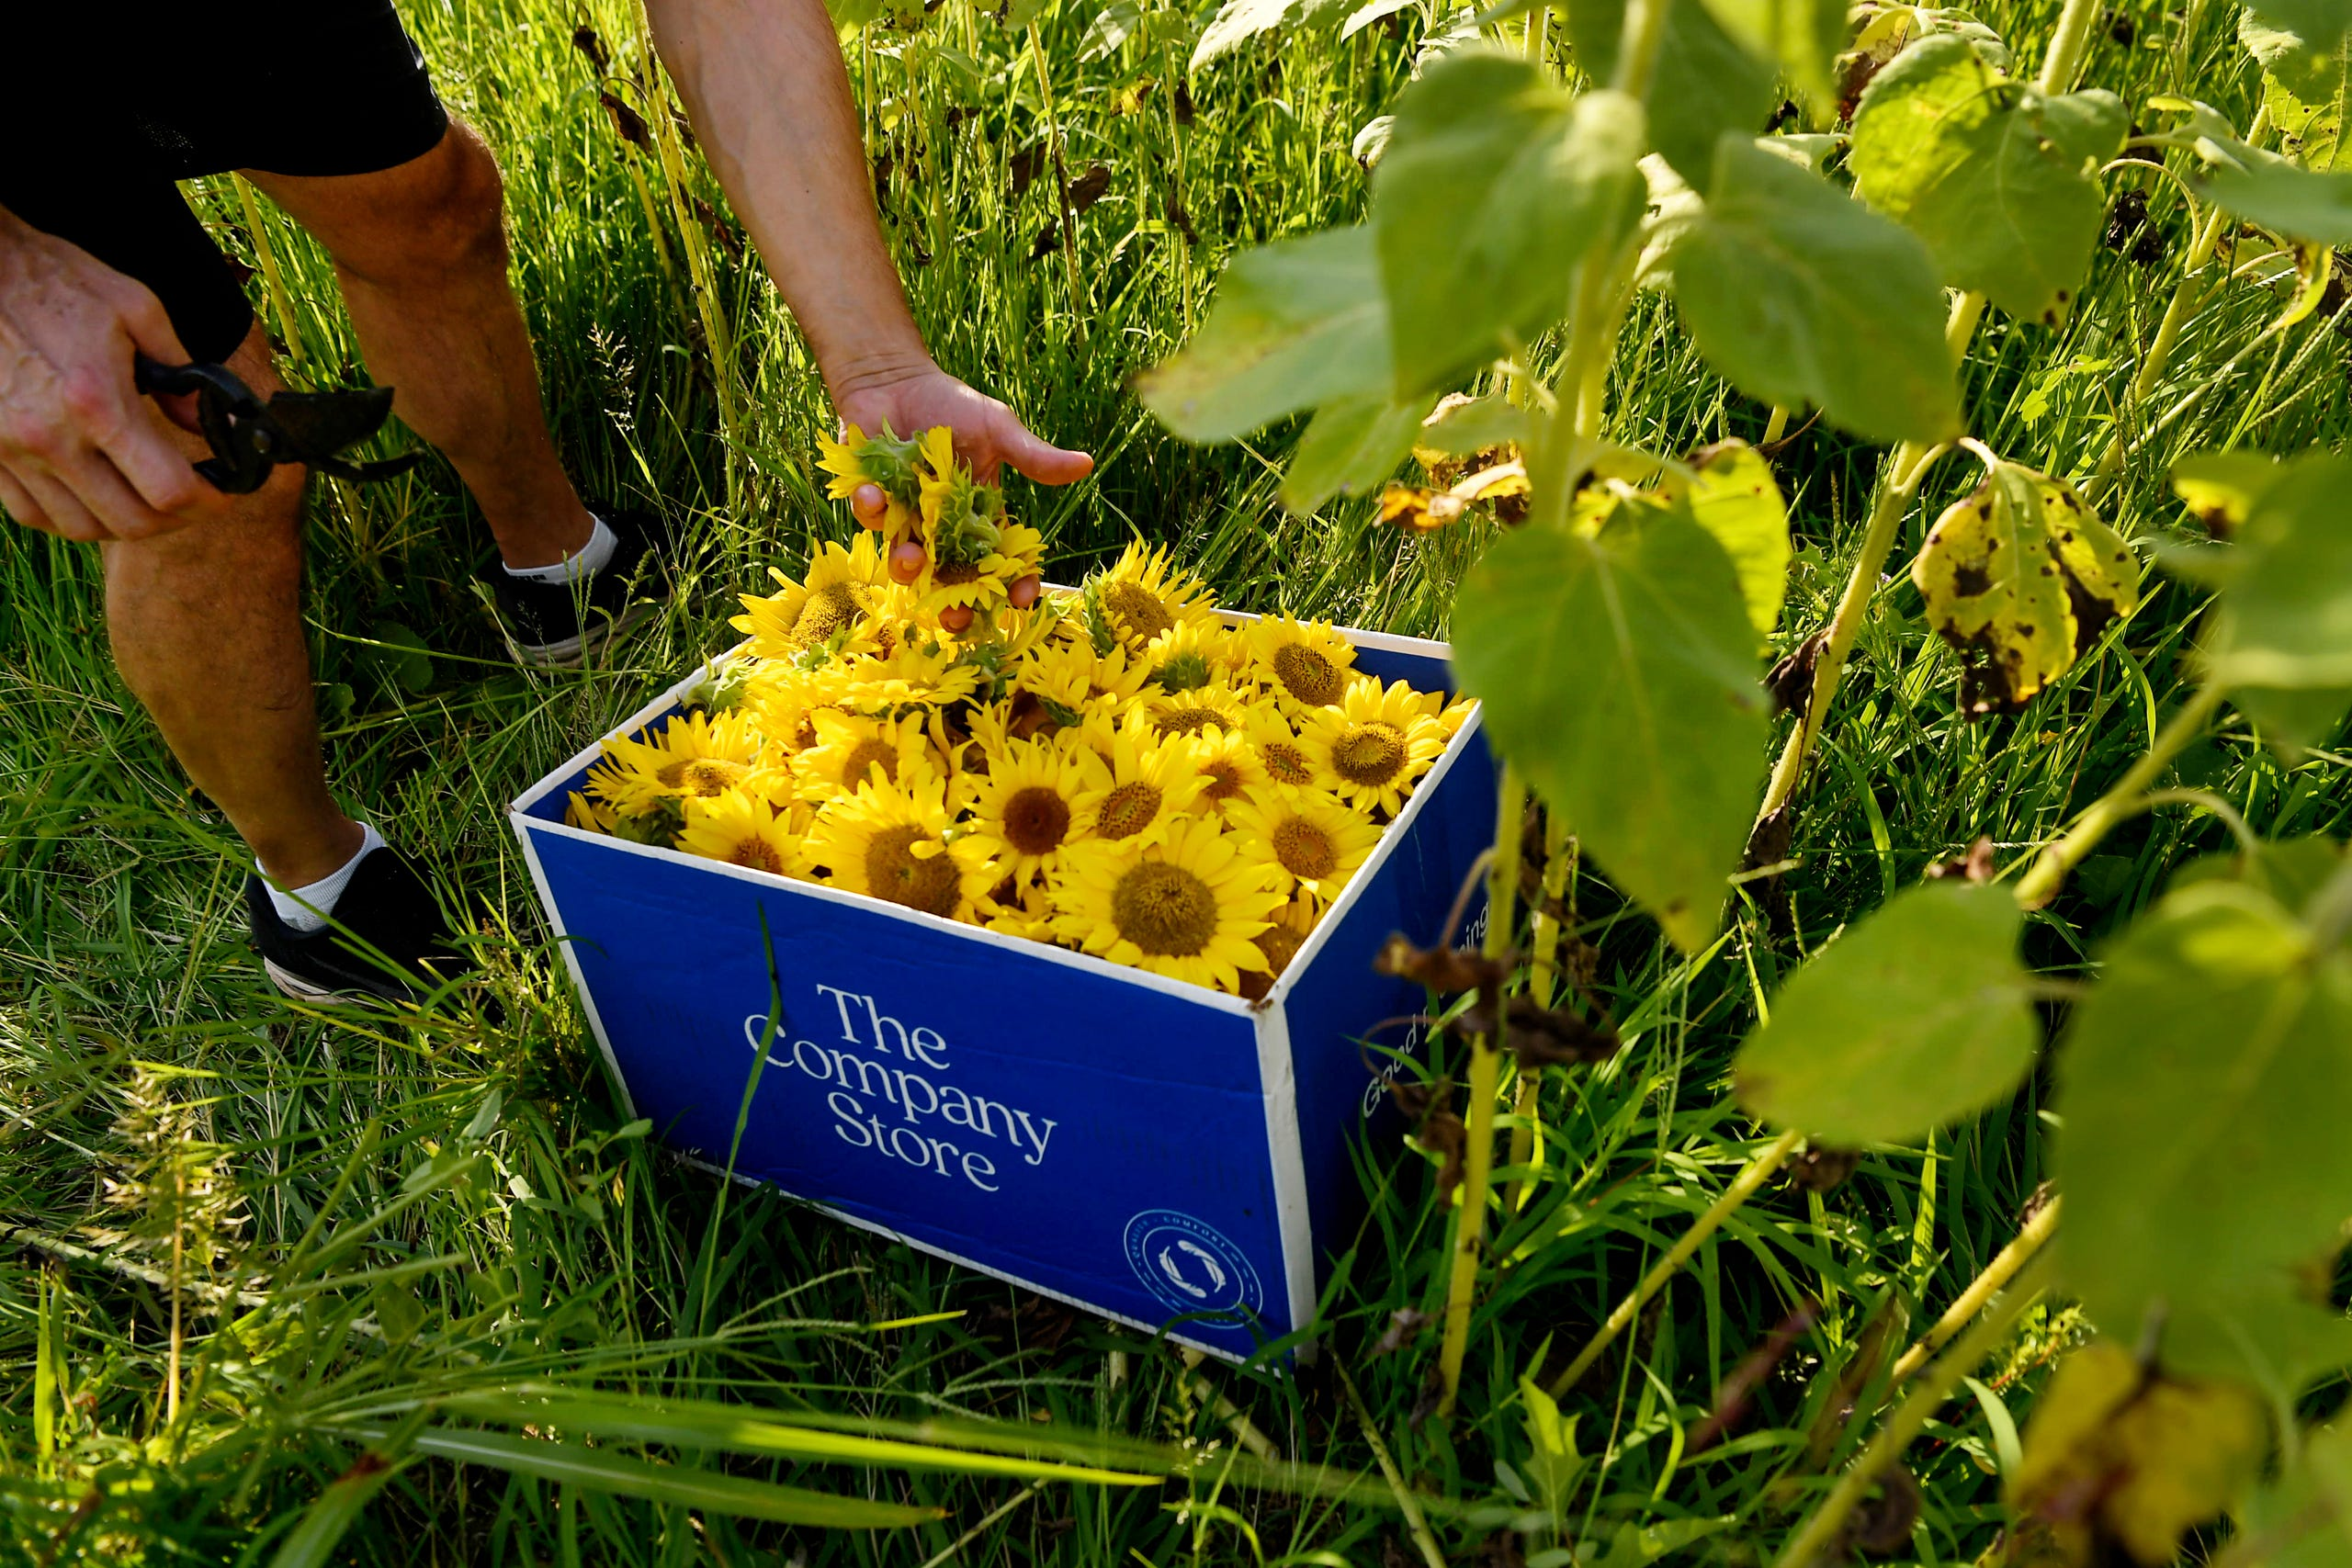 Giuseppe Ferdinandi places a handful of sunflowers into a box as residents of the Olivette community work to spread cheer across the Craggy Bridge in Woodfin August 19, 2020.